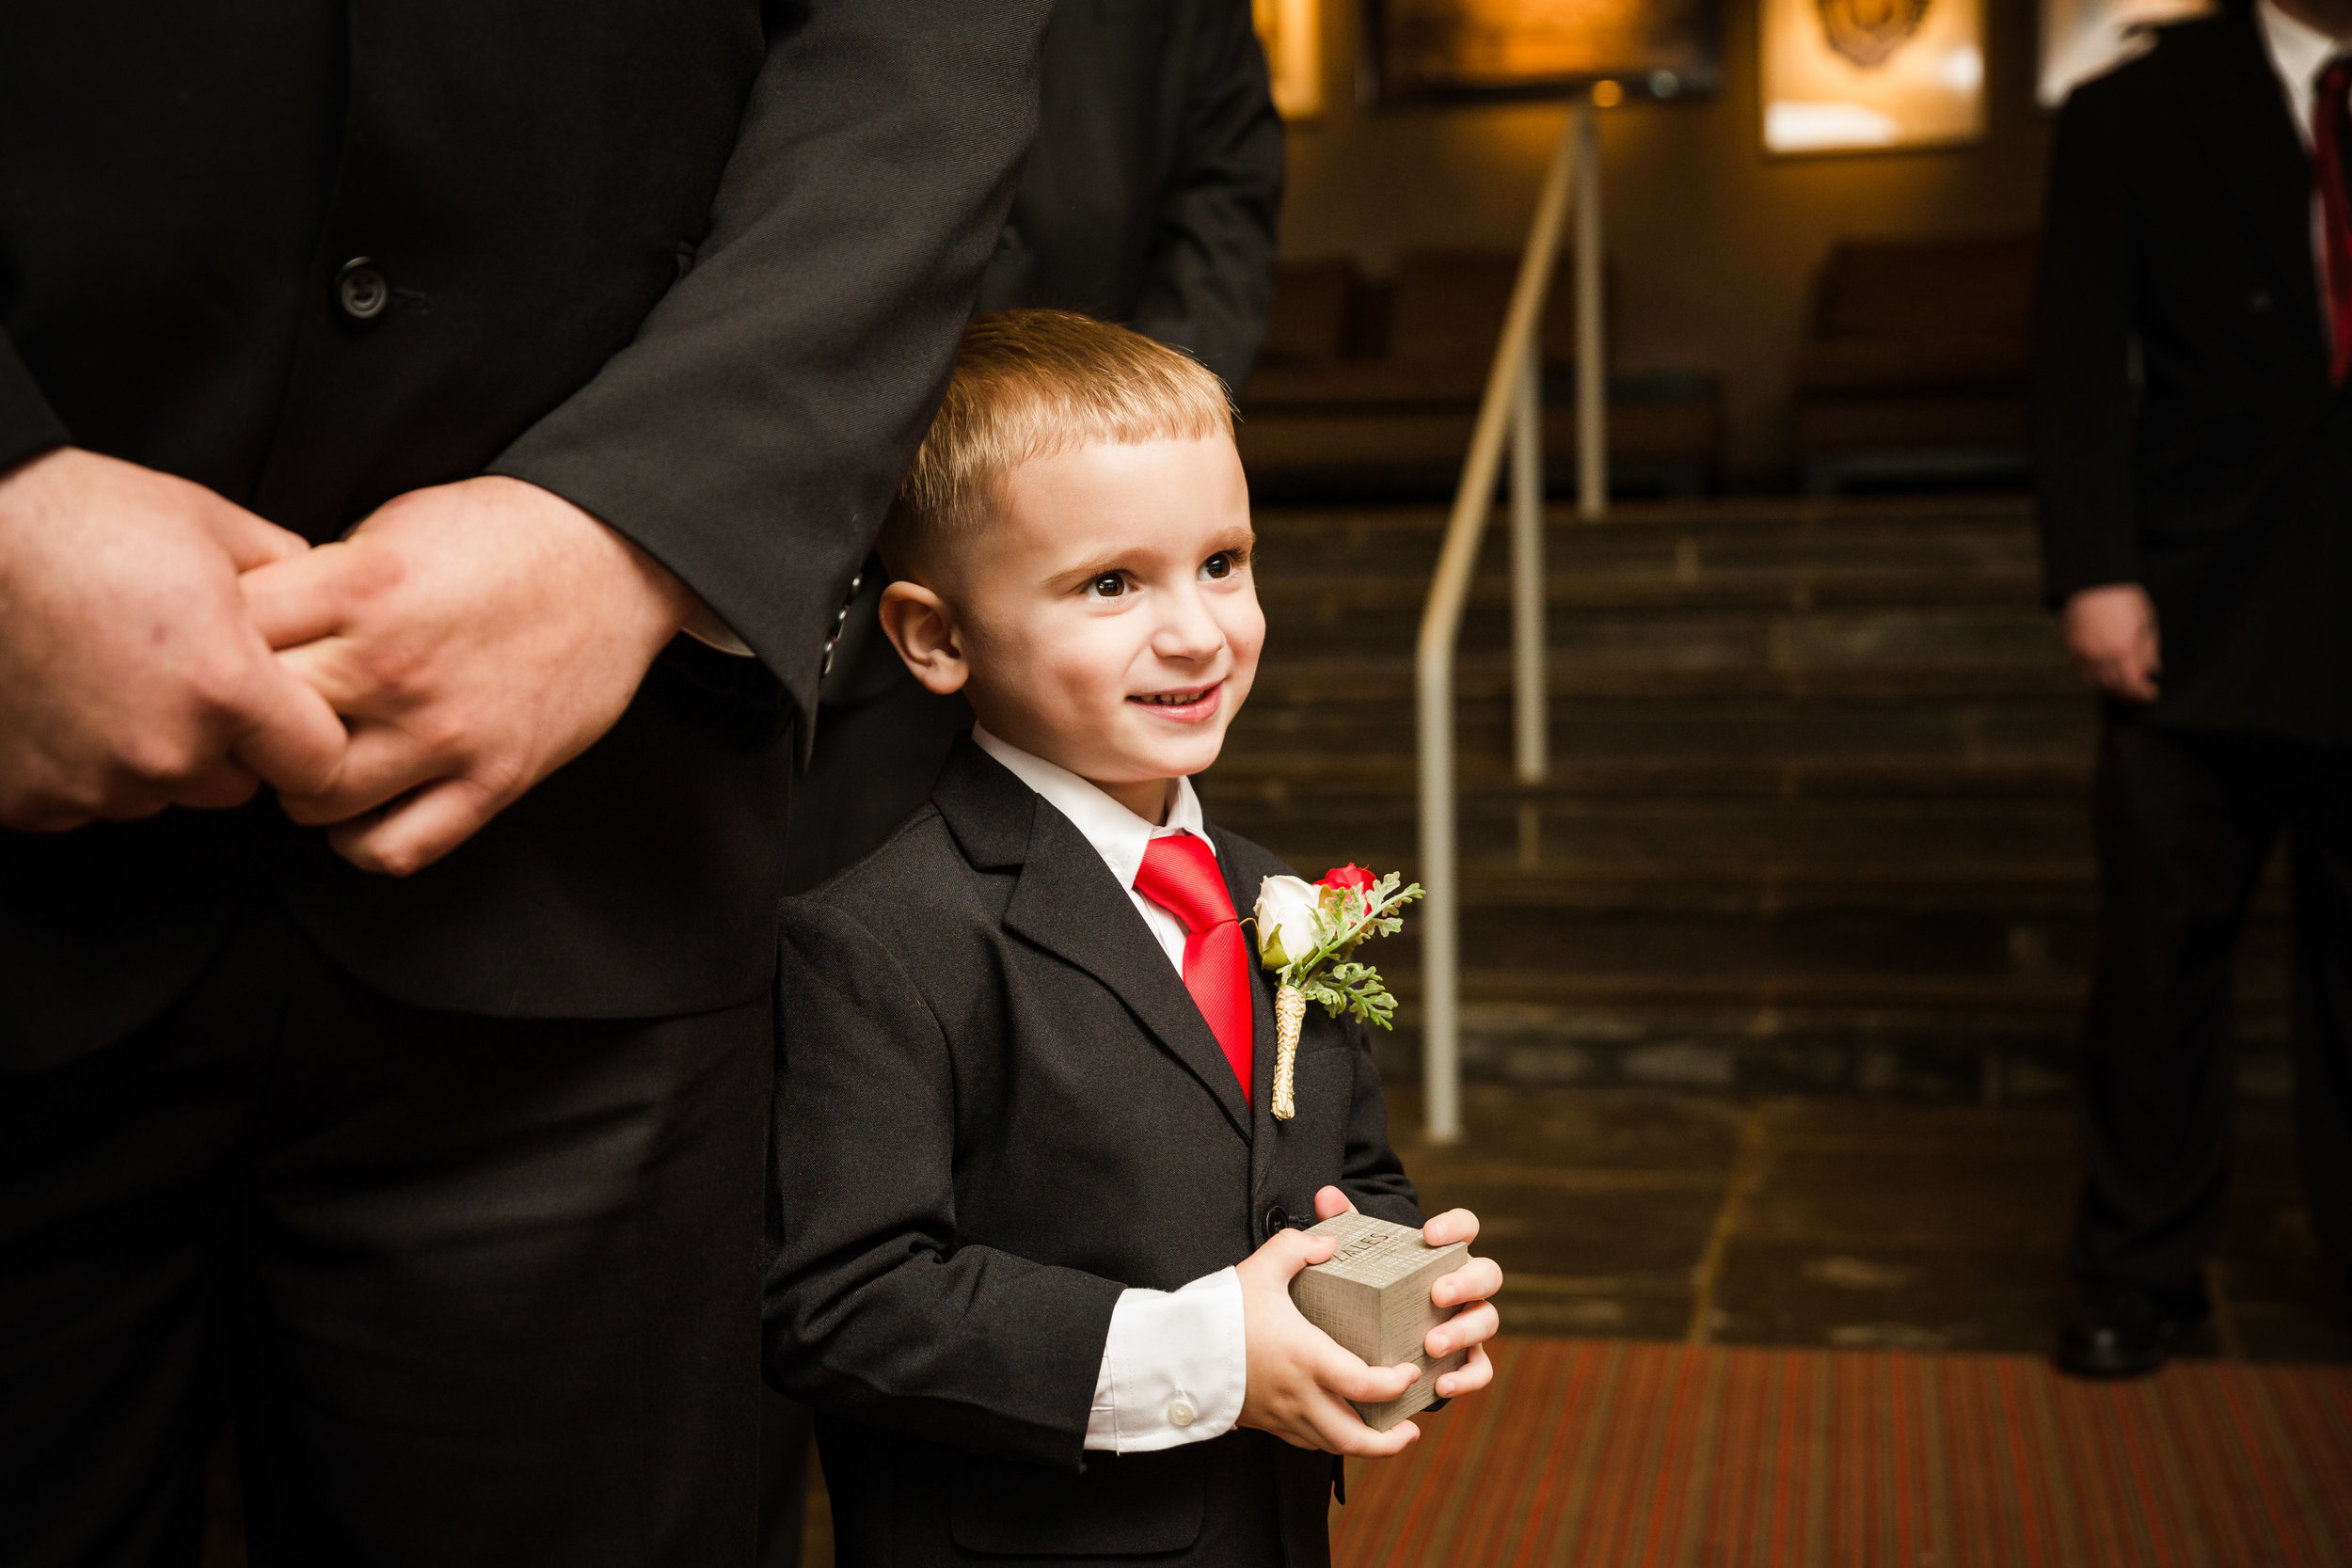 CHAUNCEY HOTEL AND CONFERENCE CENTER WEDDING PHOTOGRAPHY-49.jpg